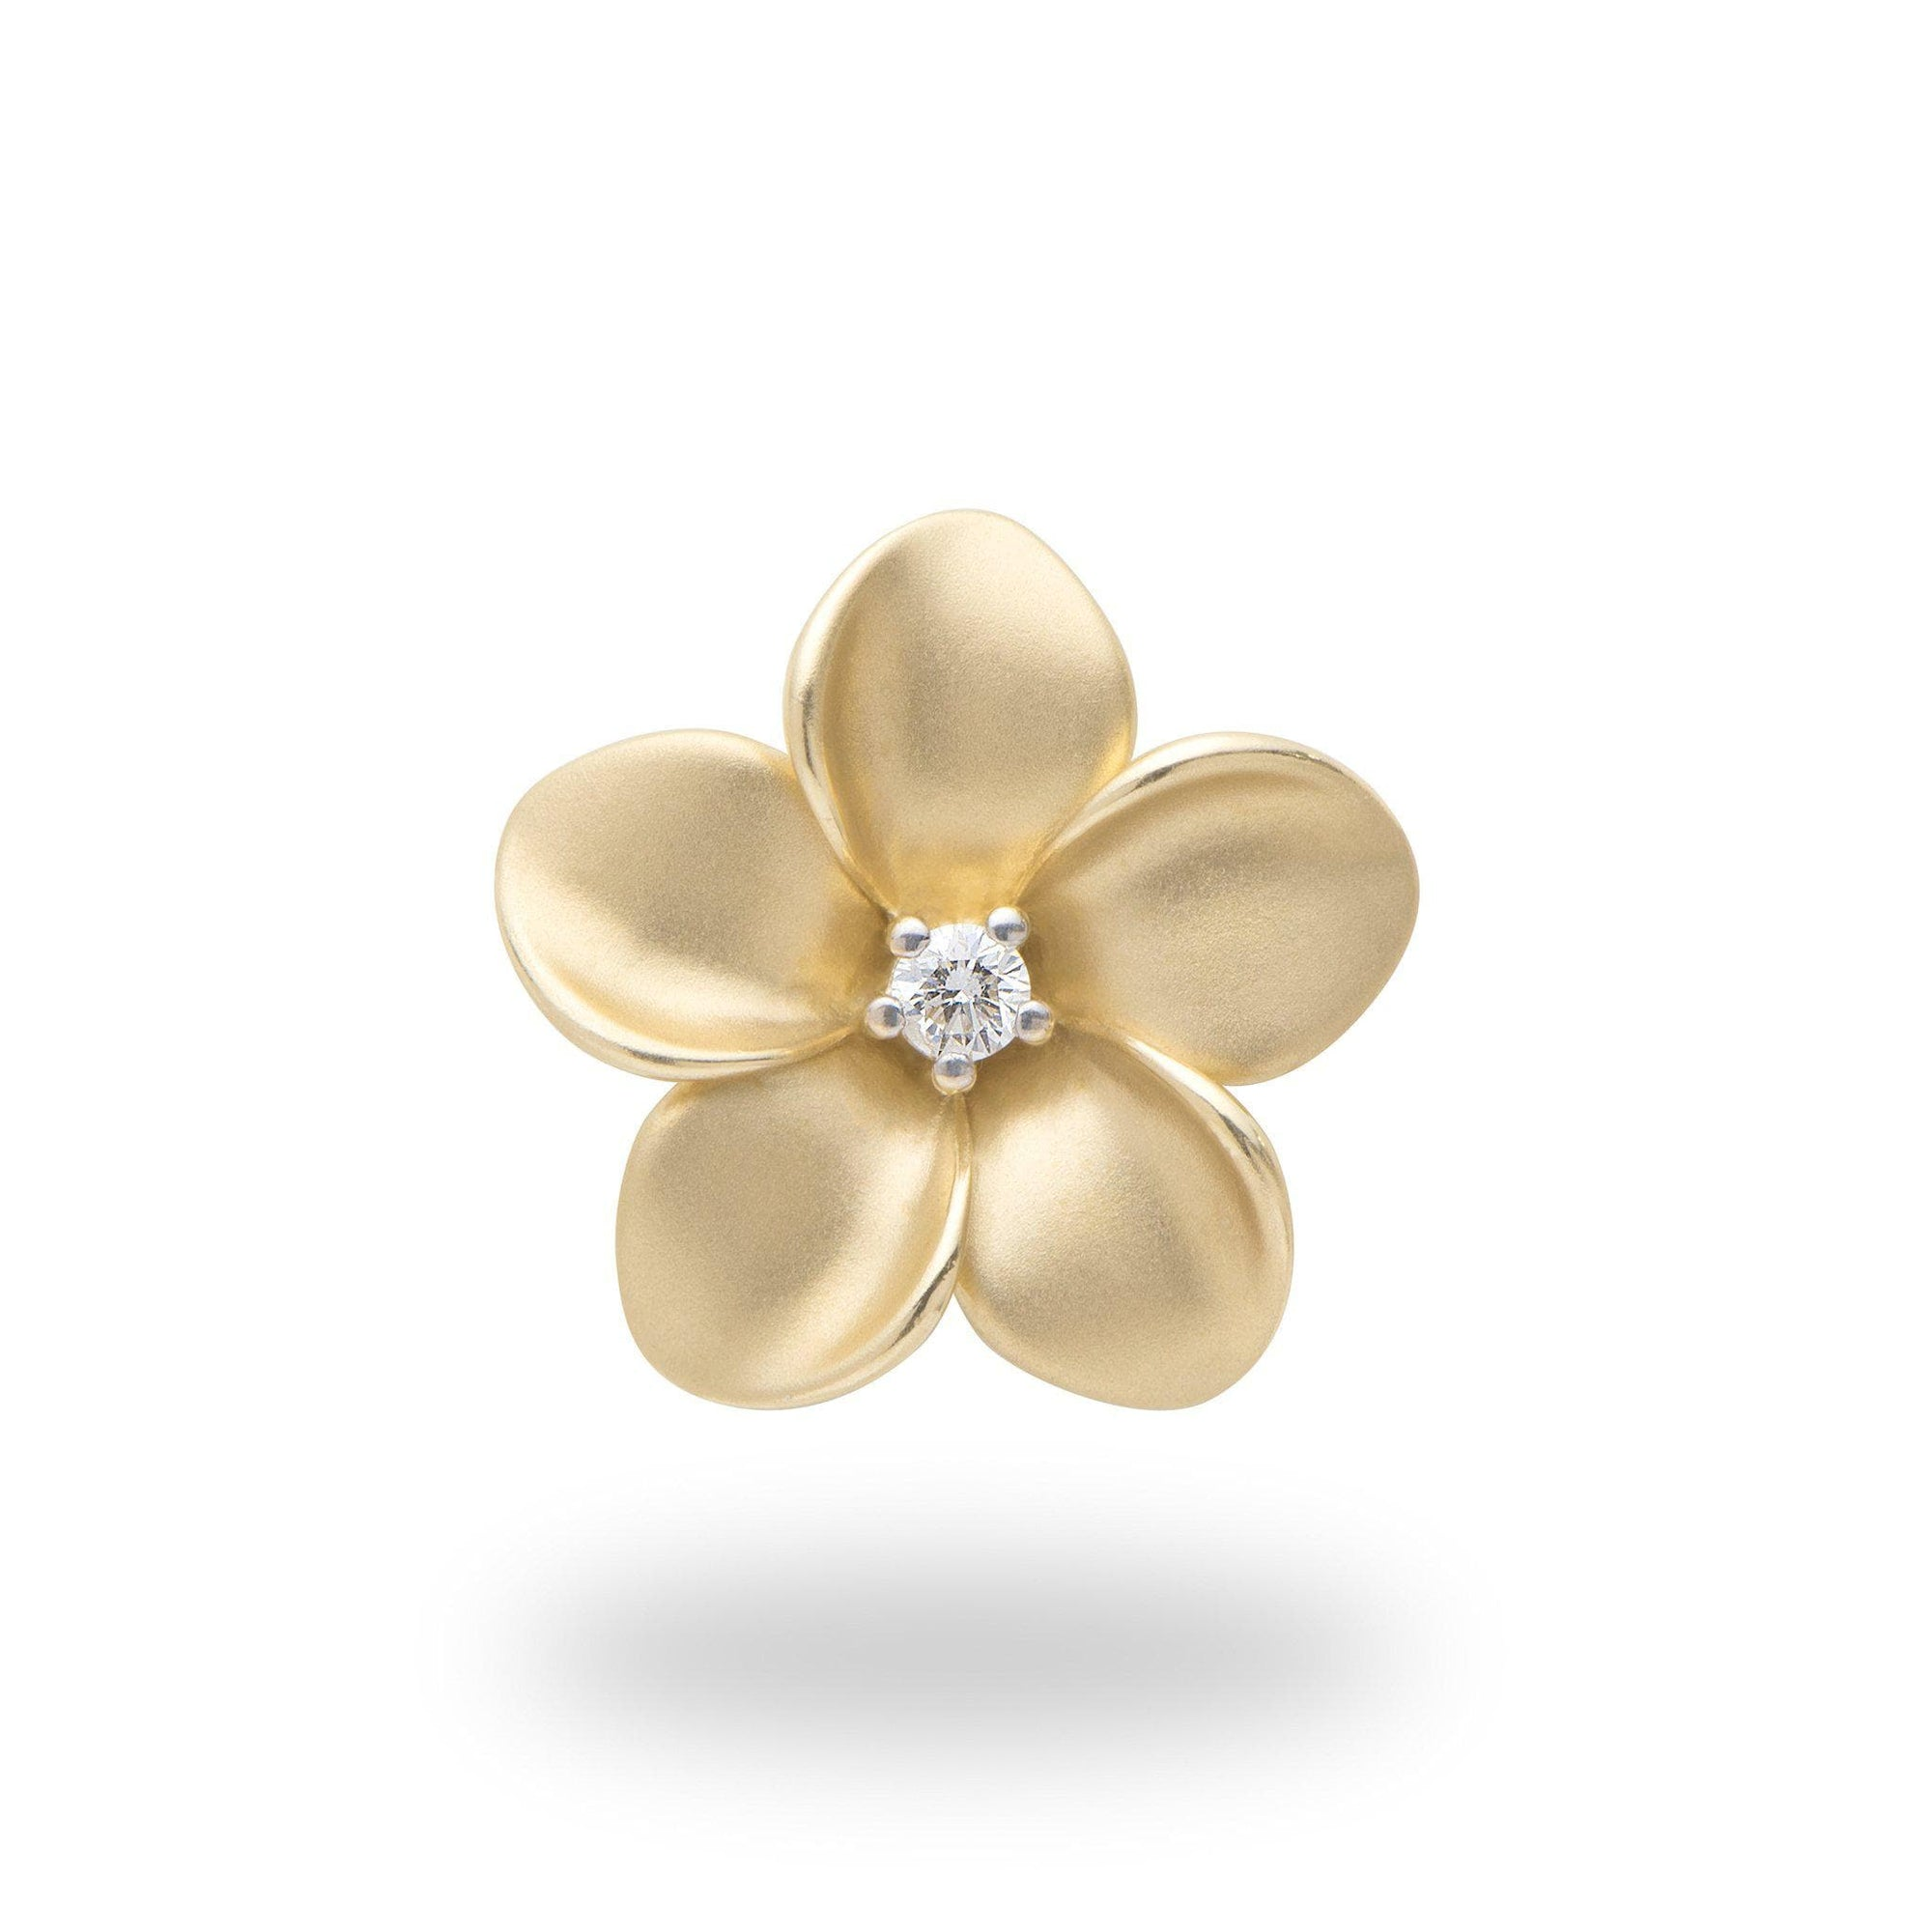 Plumeria Pendant in Gold with Diamond - 20mm-[SKU]